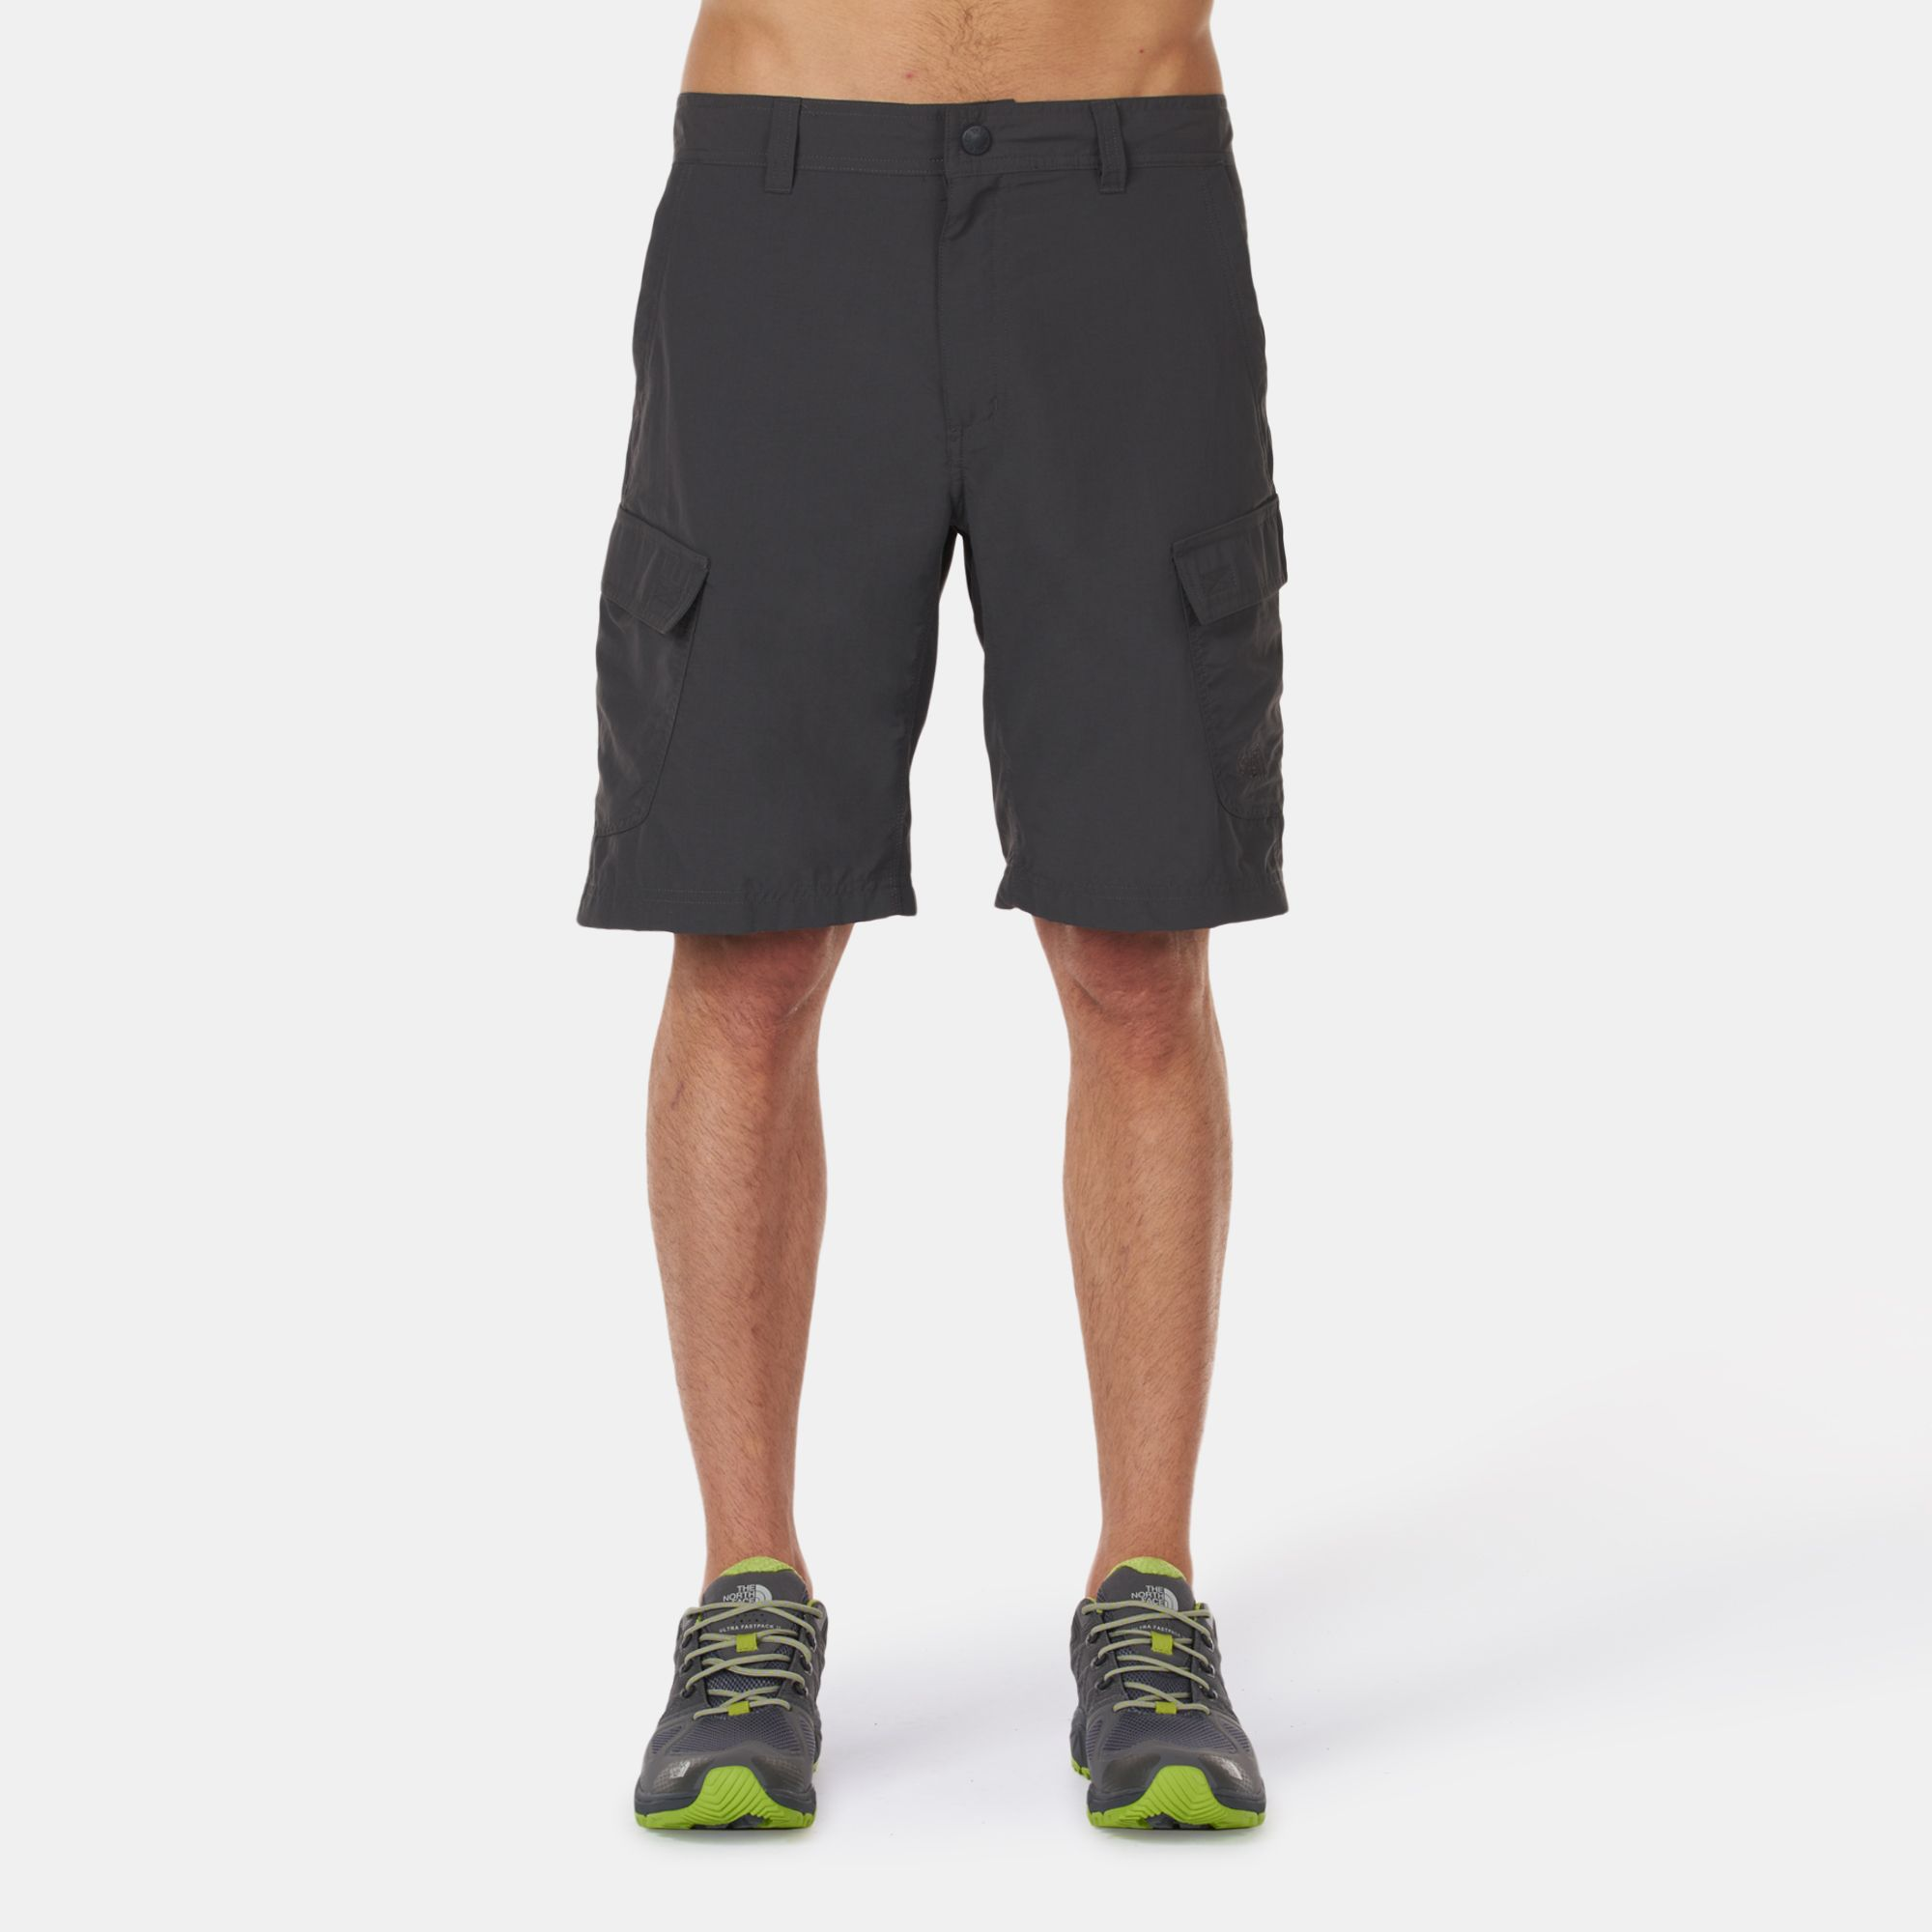 81540b5f81 Shop Grey The North Face Horizon Cargo Shorts for Mens by The North ...